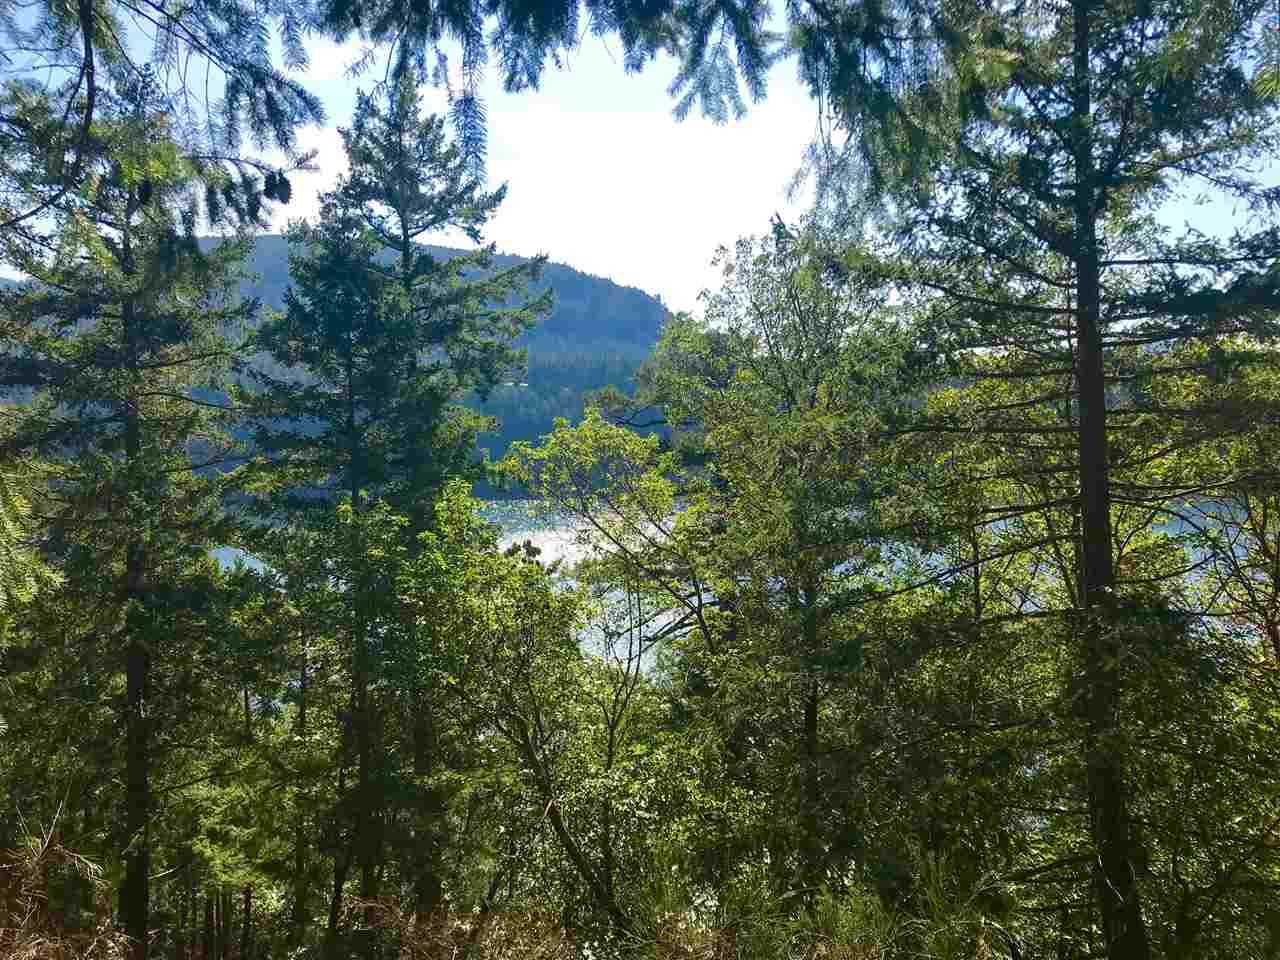 Main Photo: 154 WINTER COVE Road: Saturna Island Land for sale (Islands-Van. & Gulf)  : MLS®# R2497269